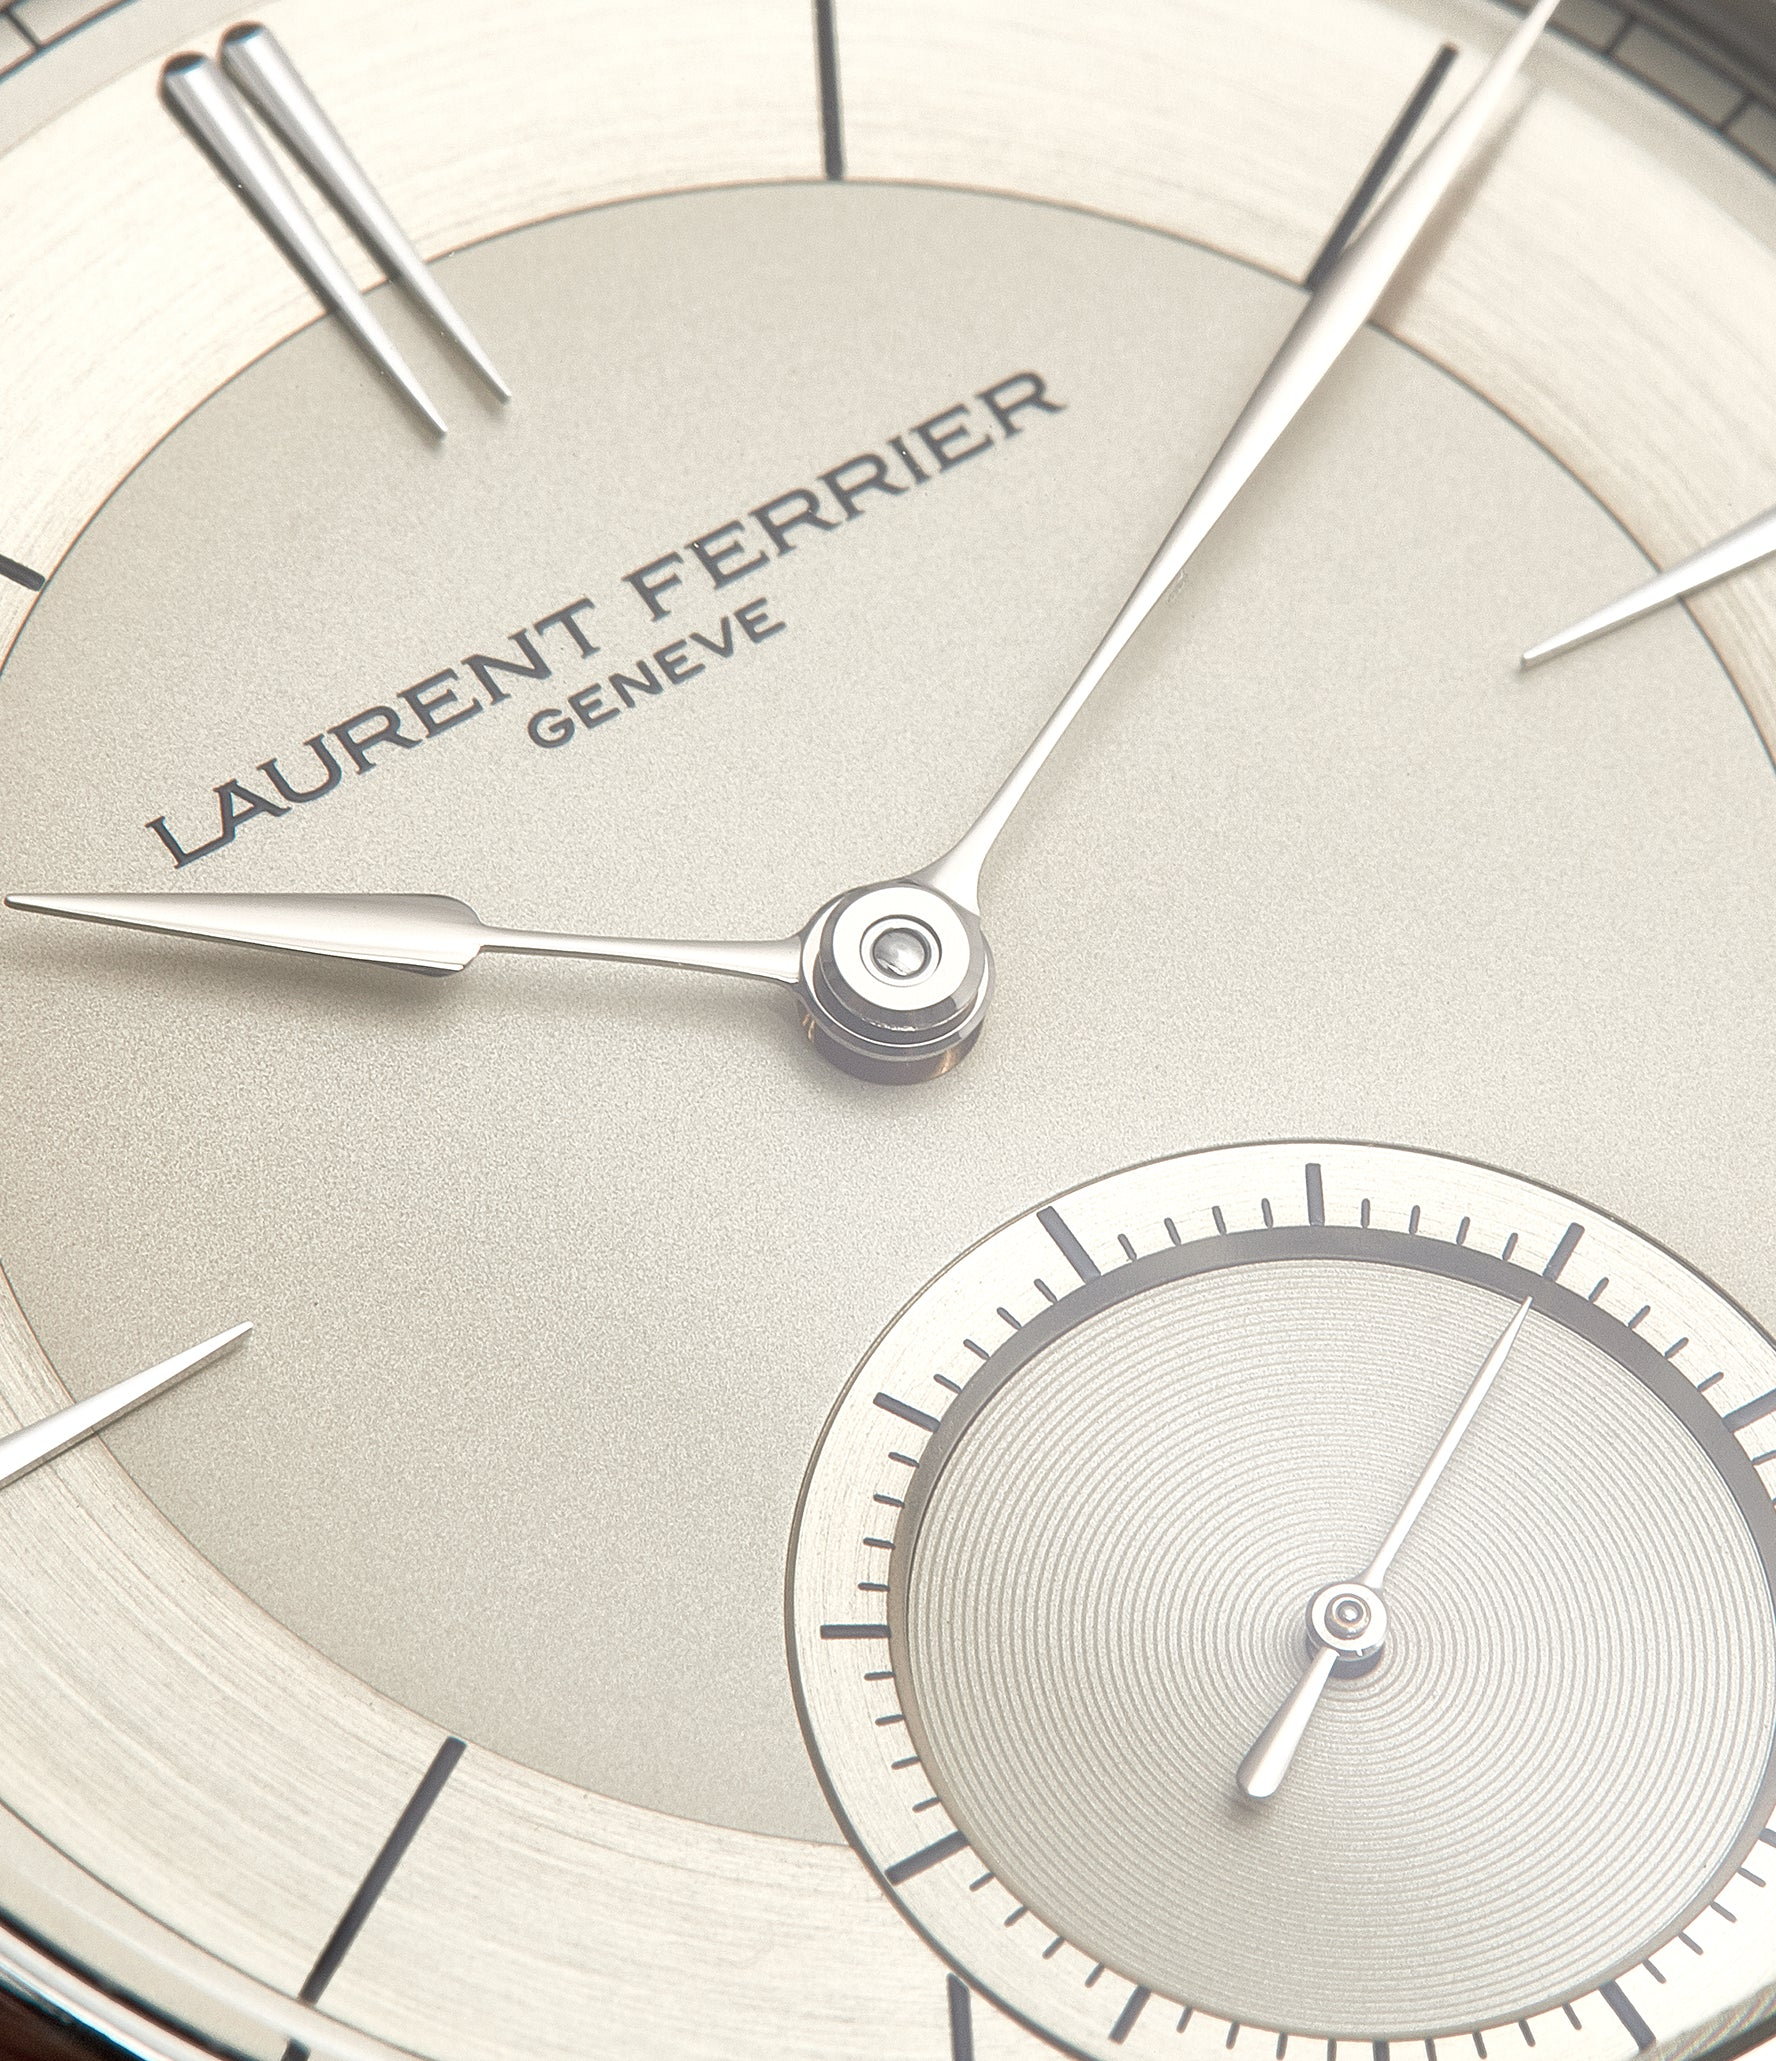 champagne dial piece unique Laurent Ferrier Galet Micro-rotor 40 mm platinum time-only dress watch from independent watchmaker for sale online at A Collected Man London UK specialist of rare watches